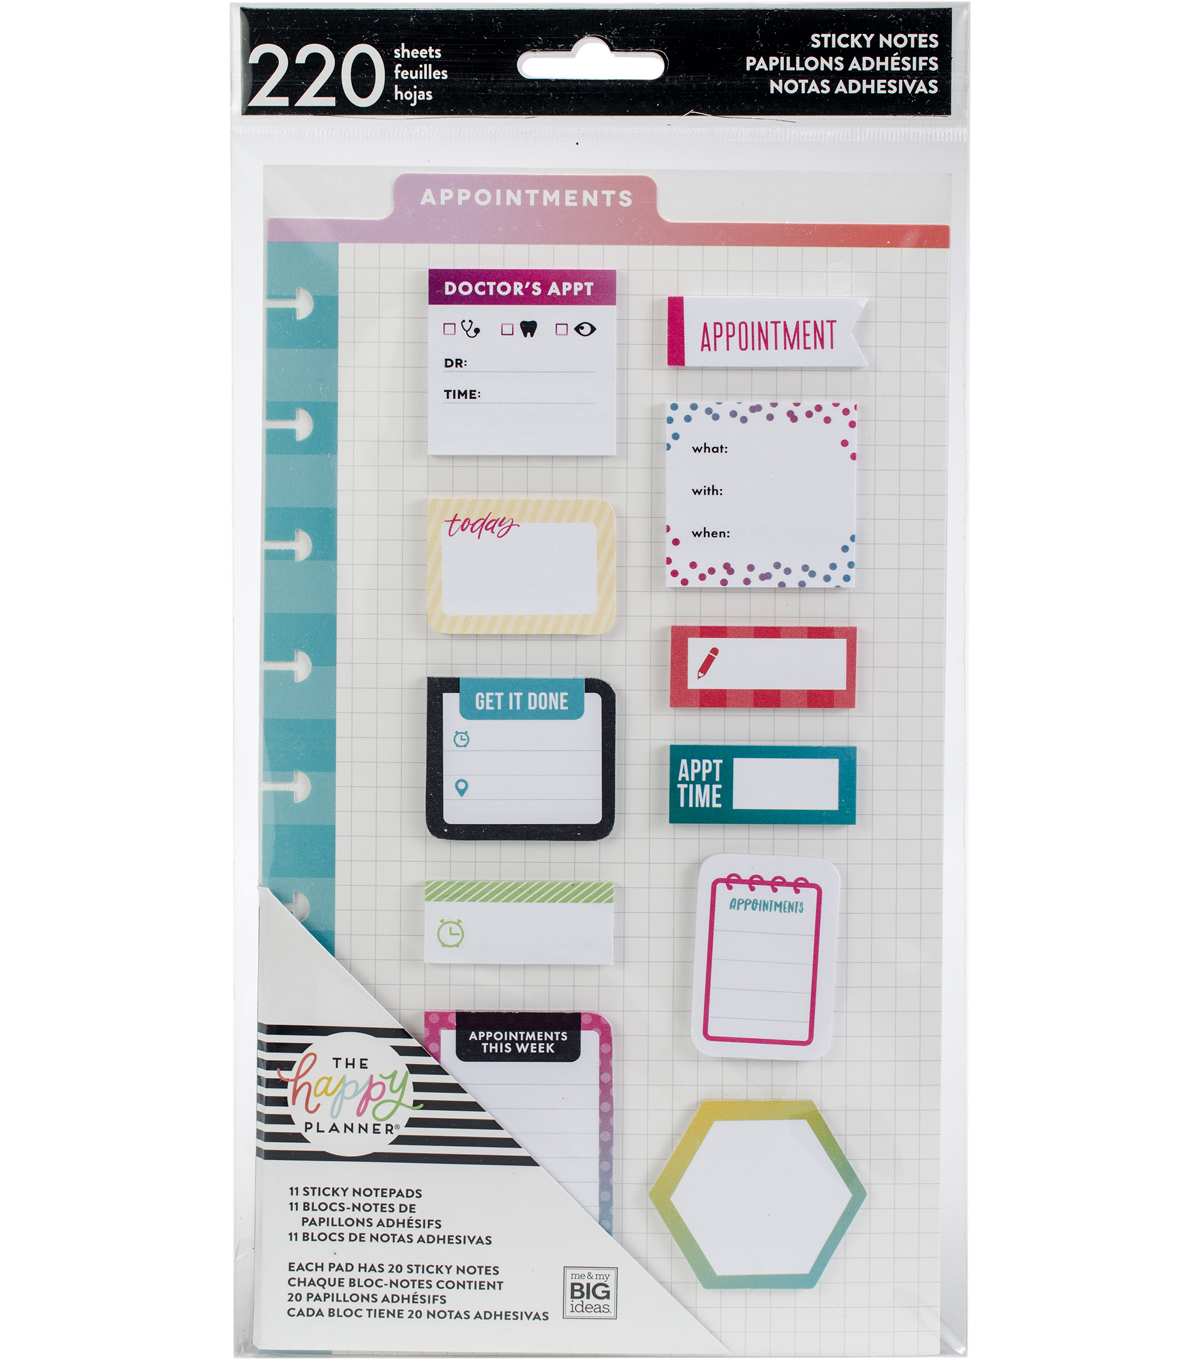 The Happy Planner 220-sheets Classic Sticky Notes-Appointments